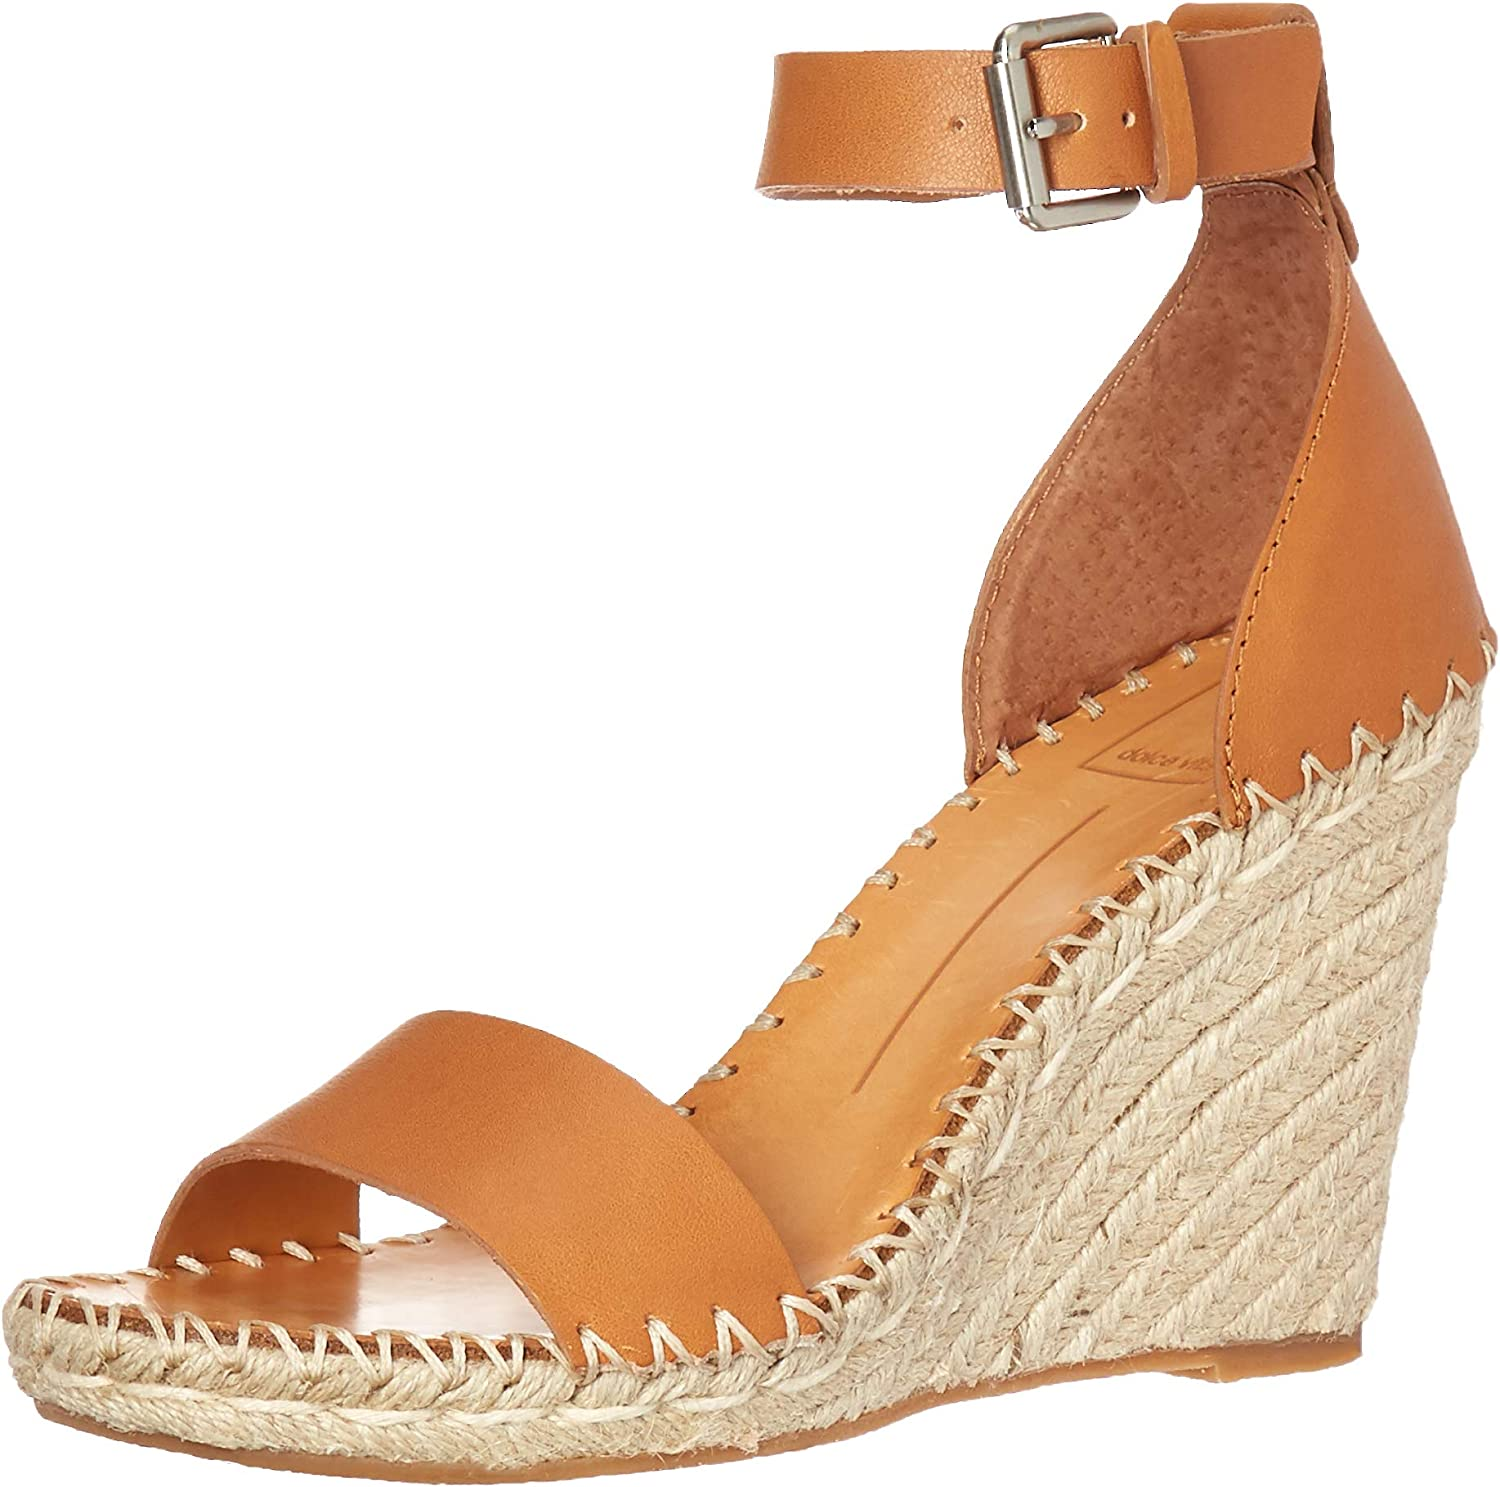 Dolce Vita Cheap mail order Credence shopping Women's Wedge Espadrilles Noor